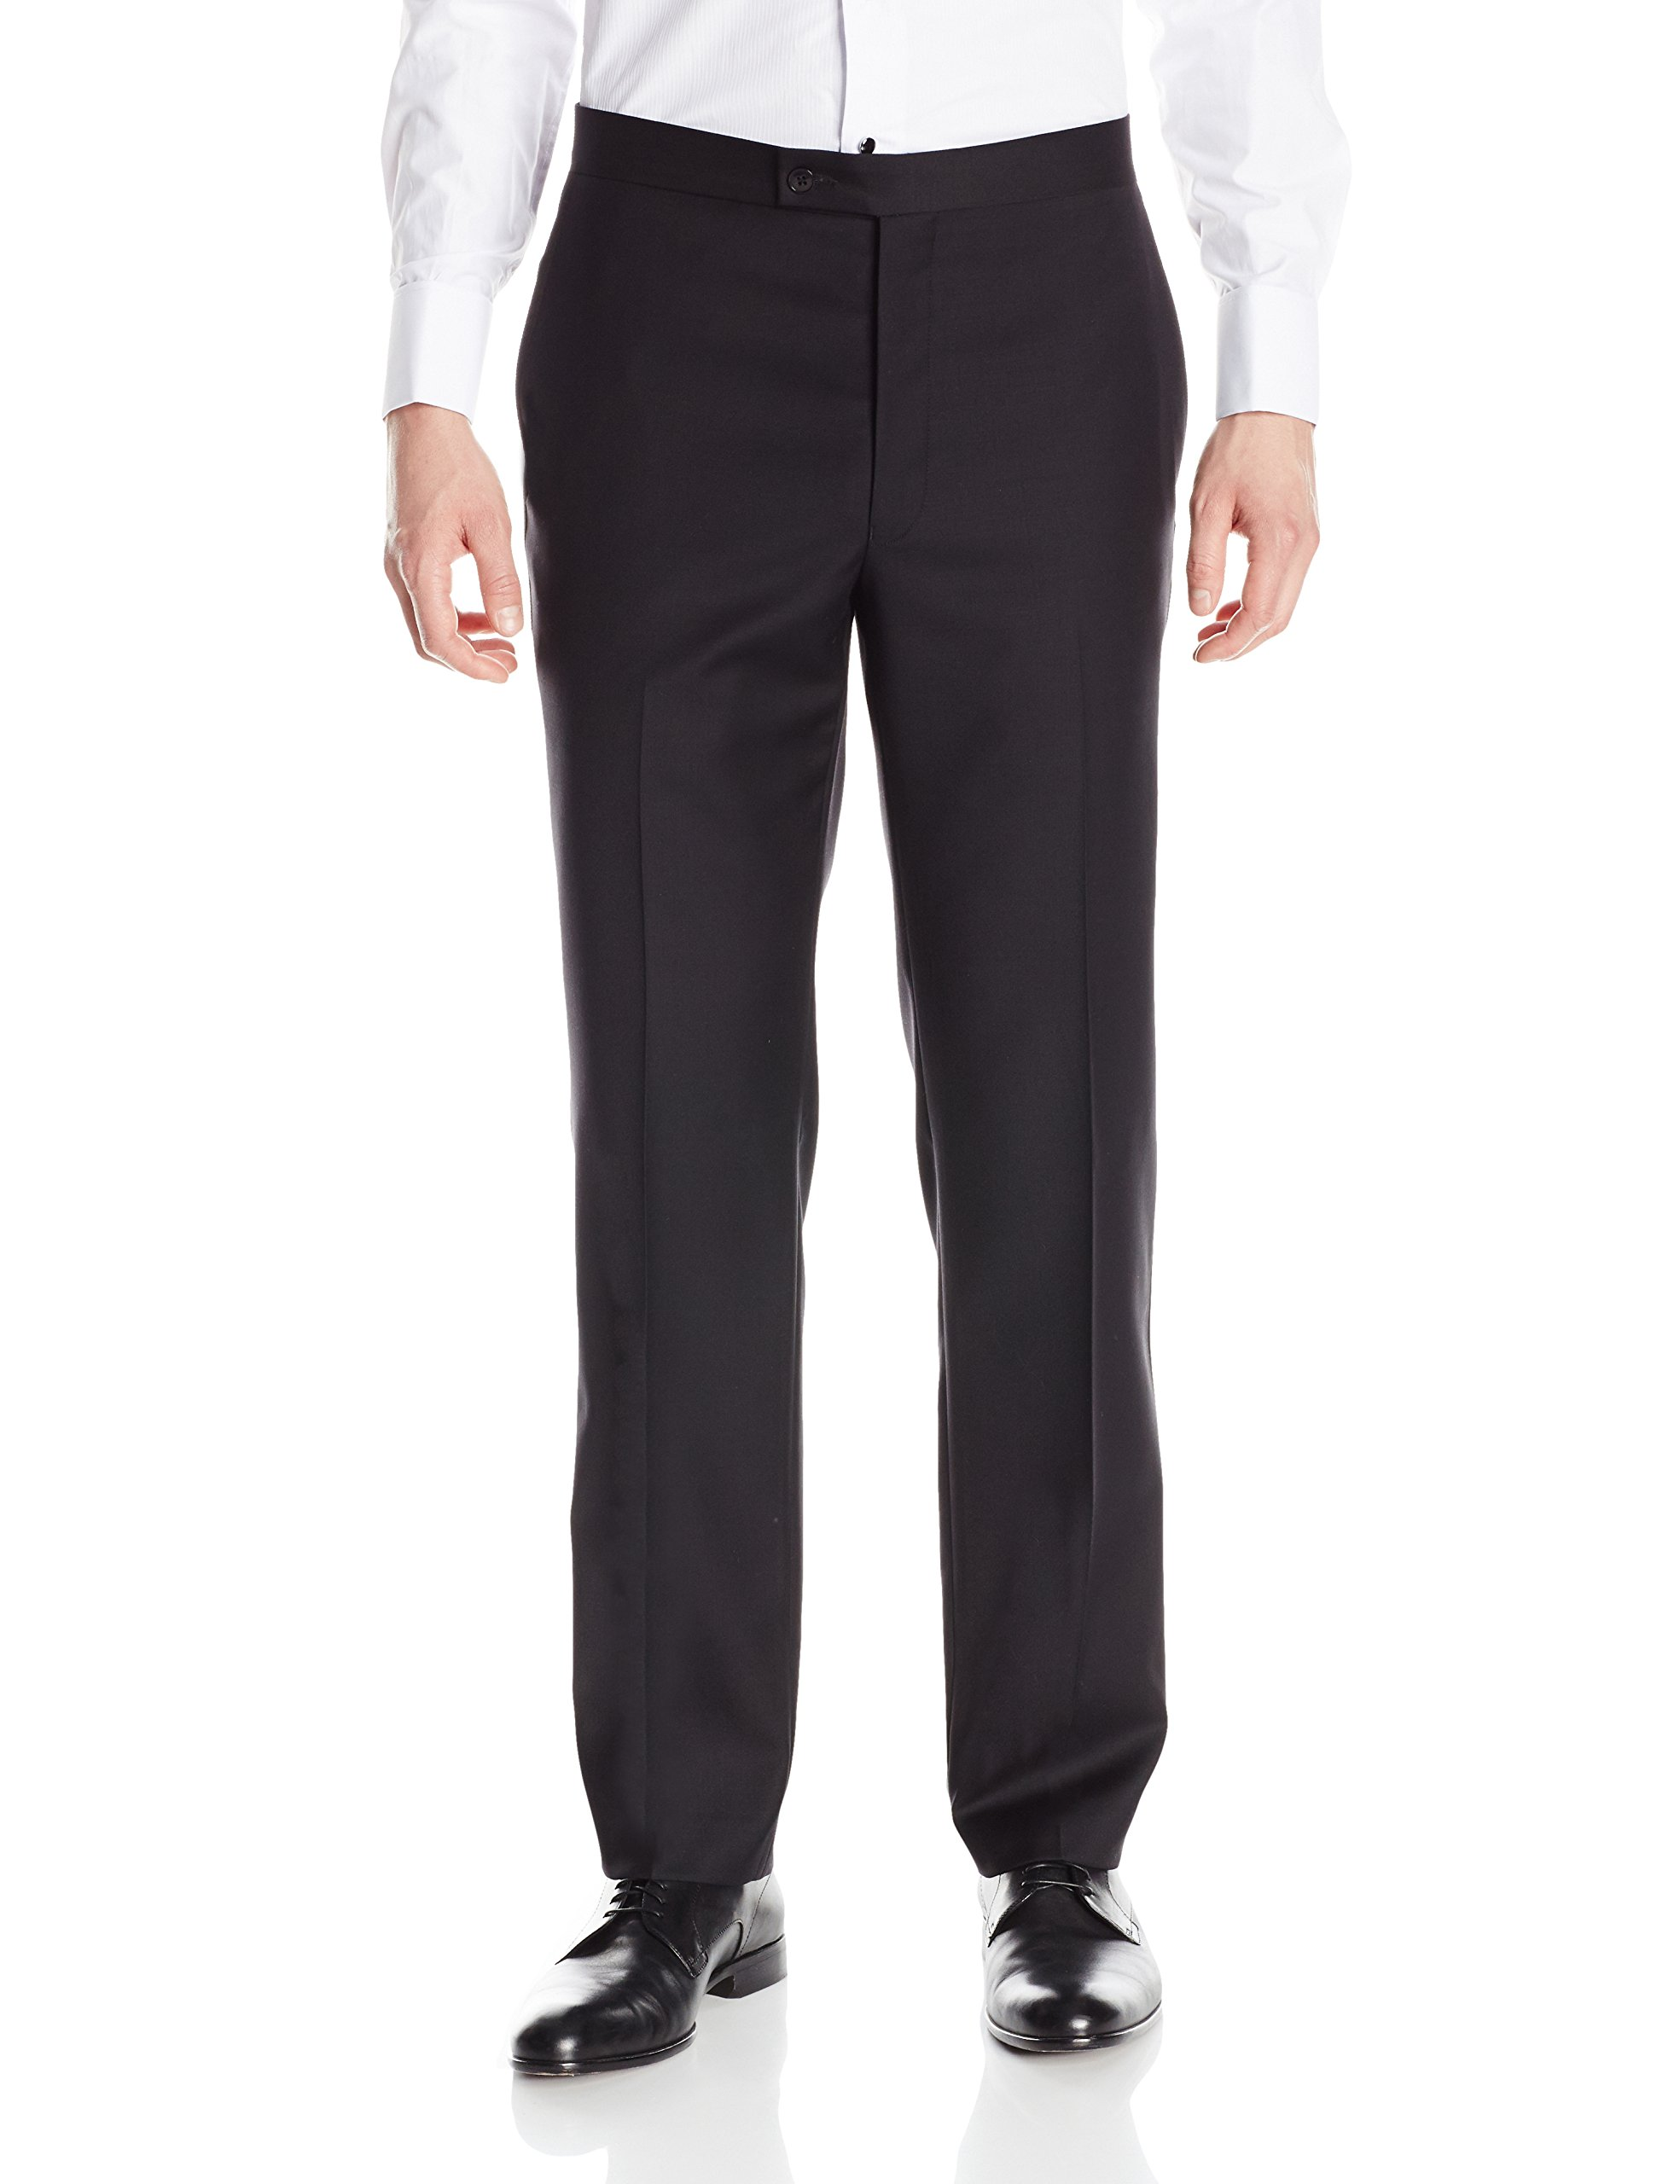 Calvin Klein Men's Modern Fit 100% Wool Tuxedo Suit Separate (Blazer and Pant), Black Pant, 36 X 32 by Calvin Klein